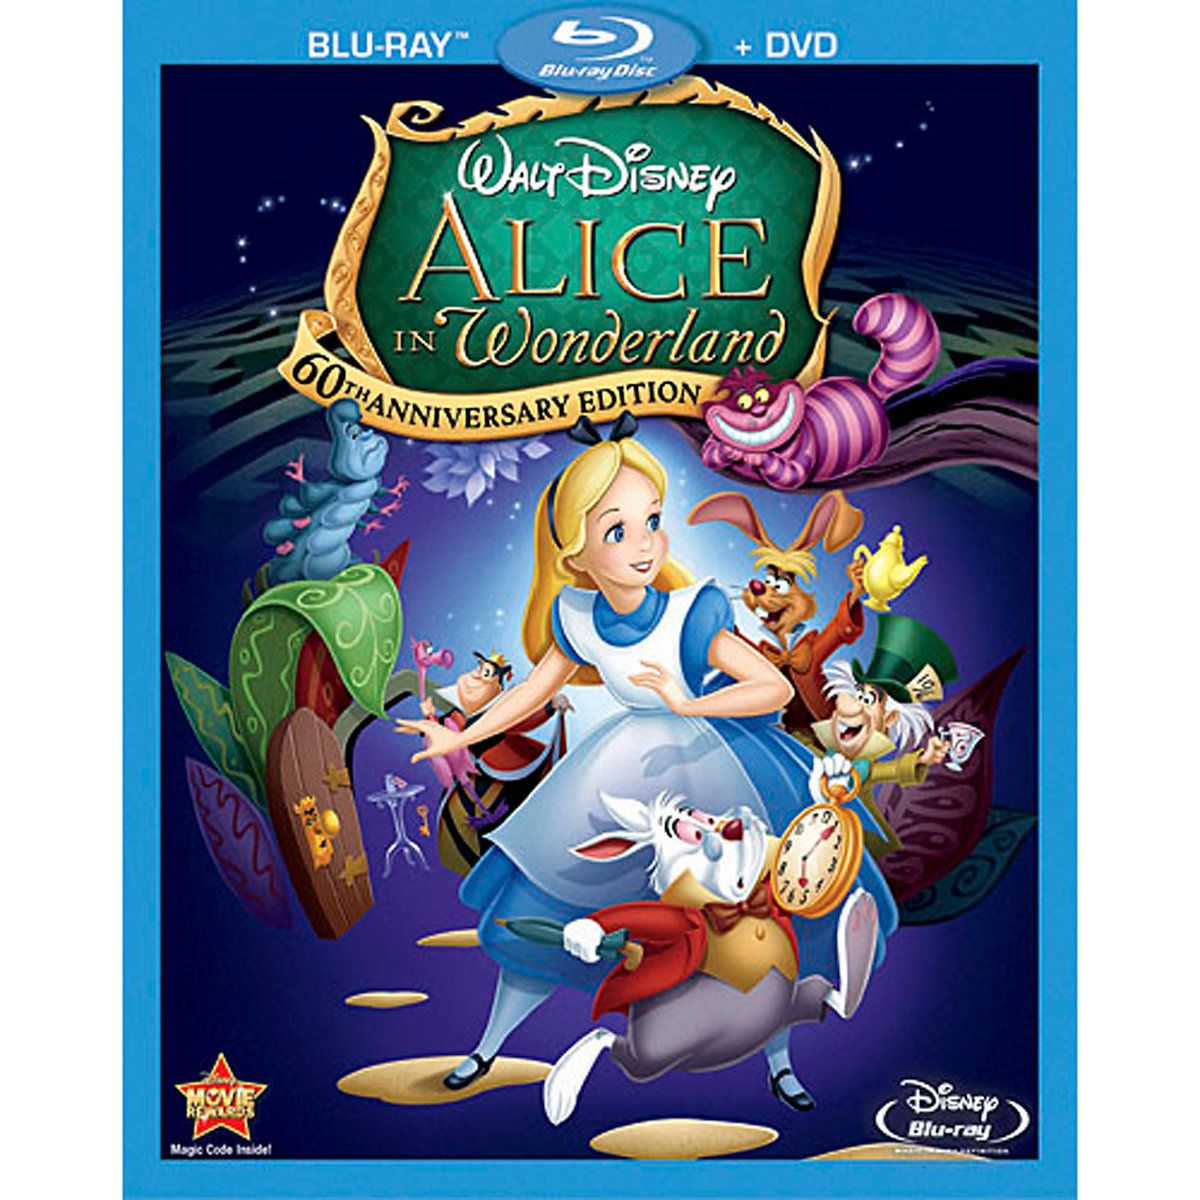 Alice in Wonderland (1951) (60th Anniversary Edition) (Blu-ray + DVD)